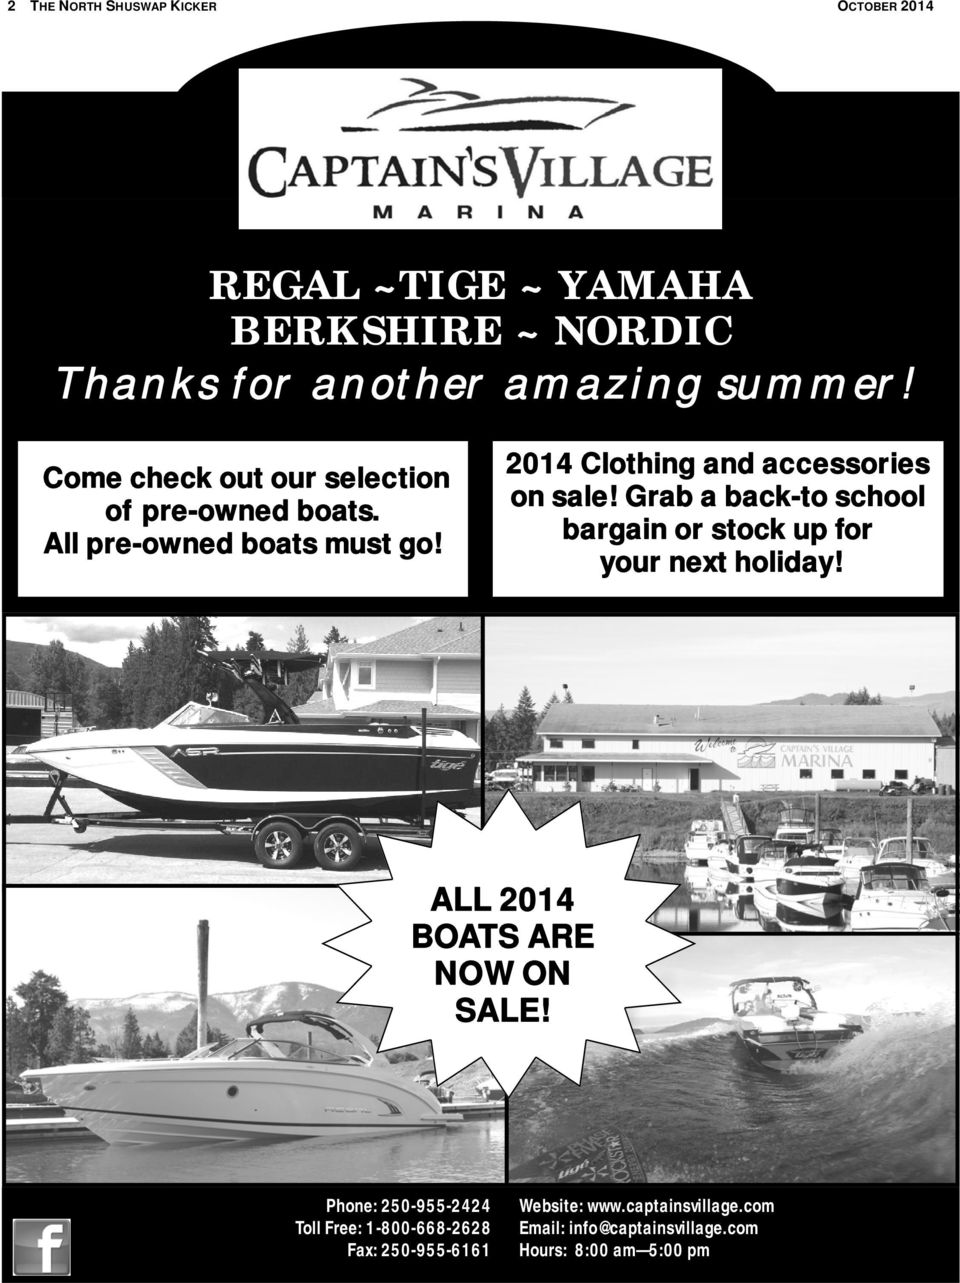 Grab a back-to school bargain or stock up for your next holiday! ALL 2014 BOATS ARE NOW ON SALE!